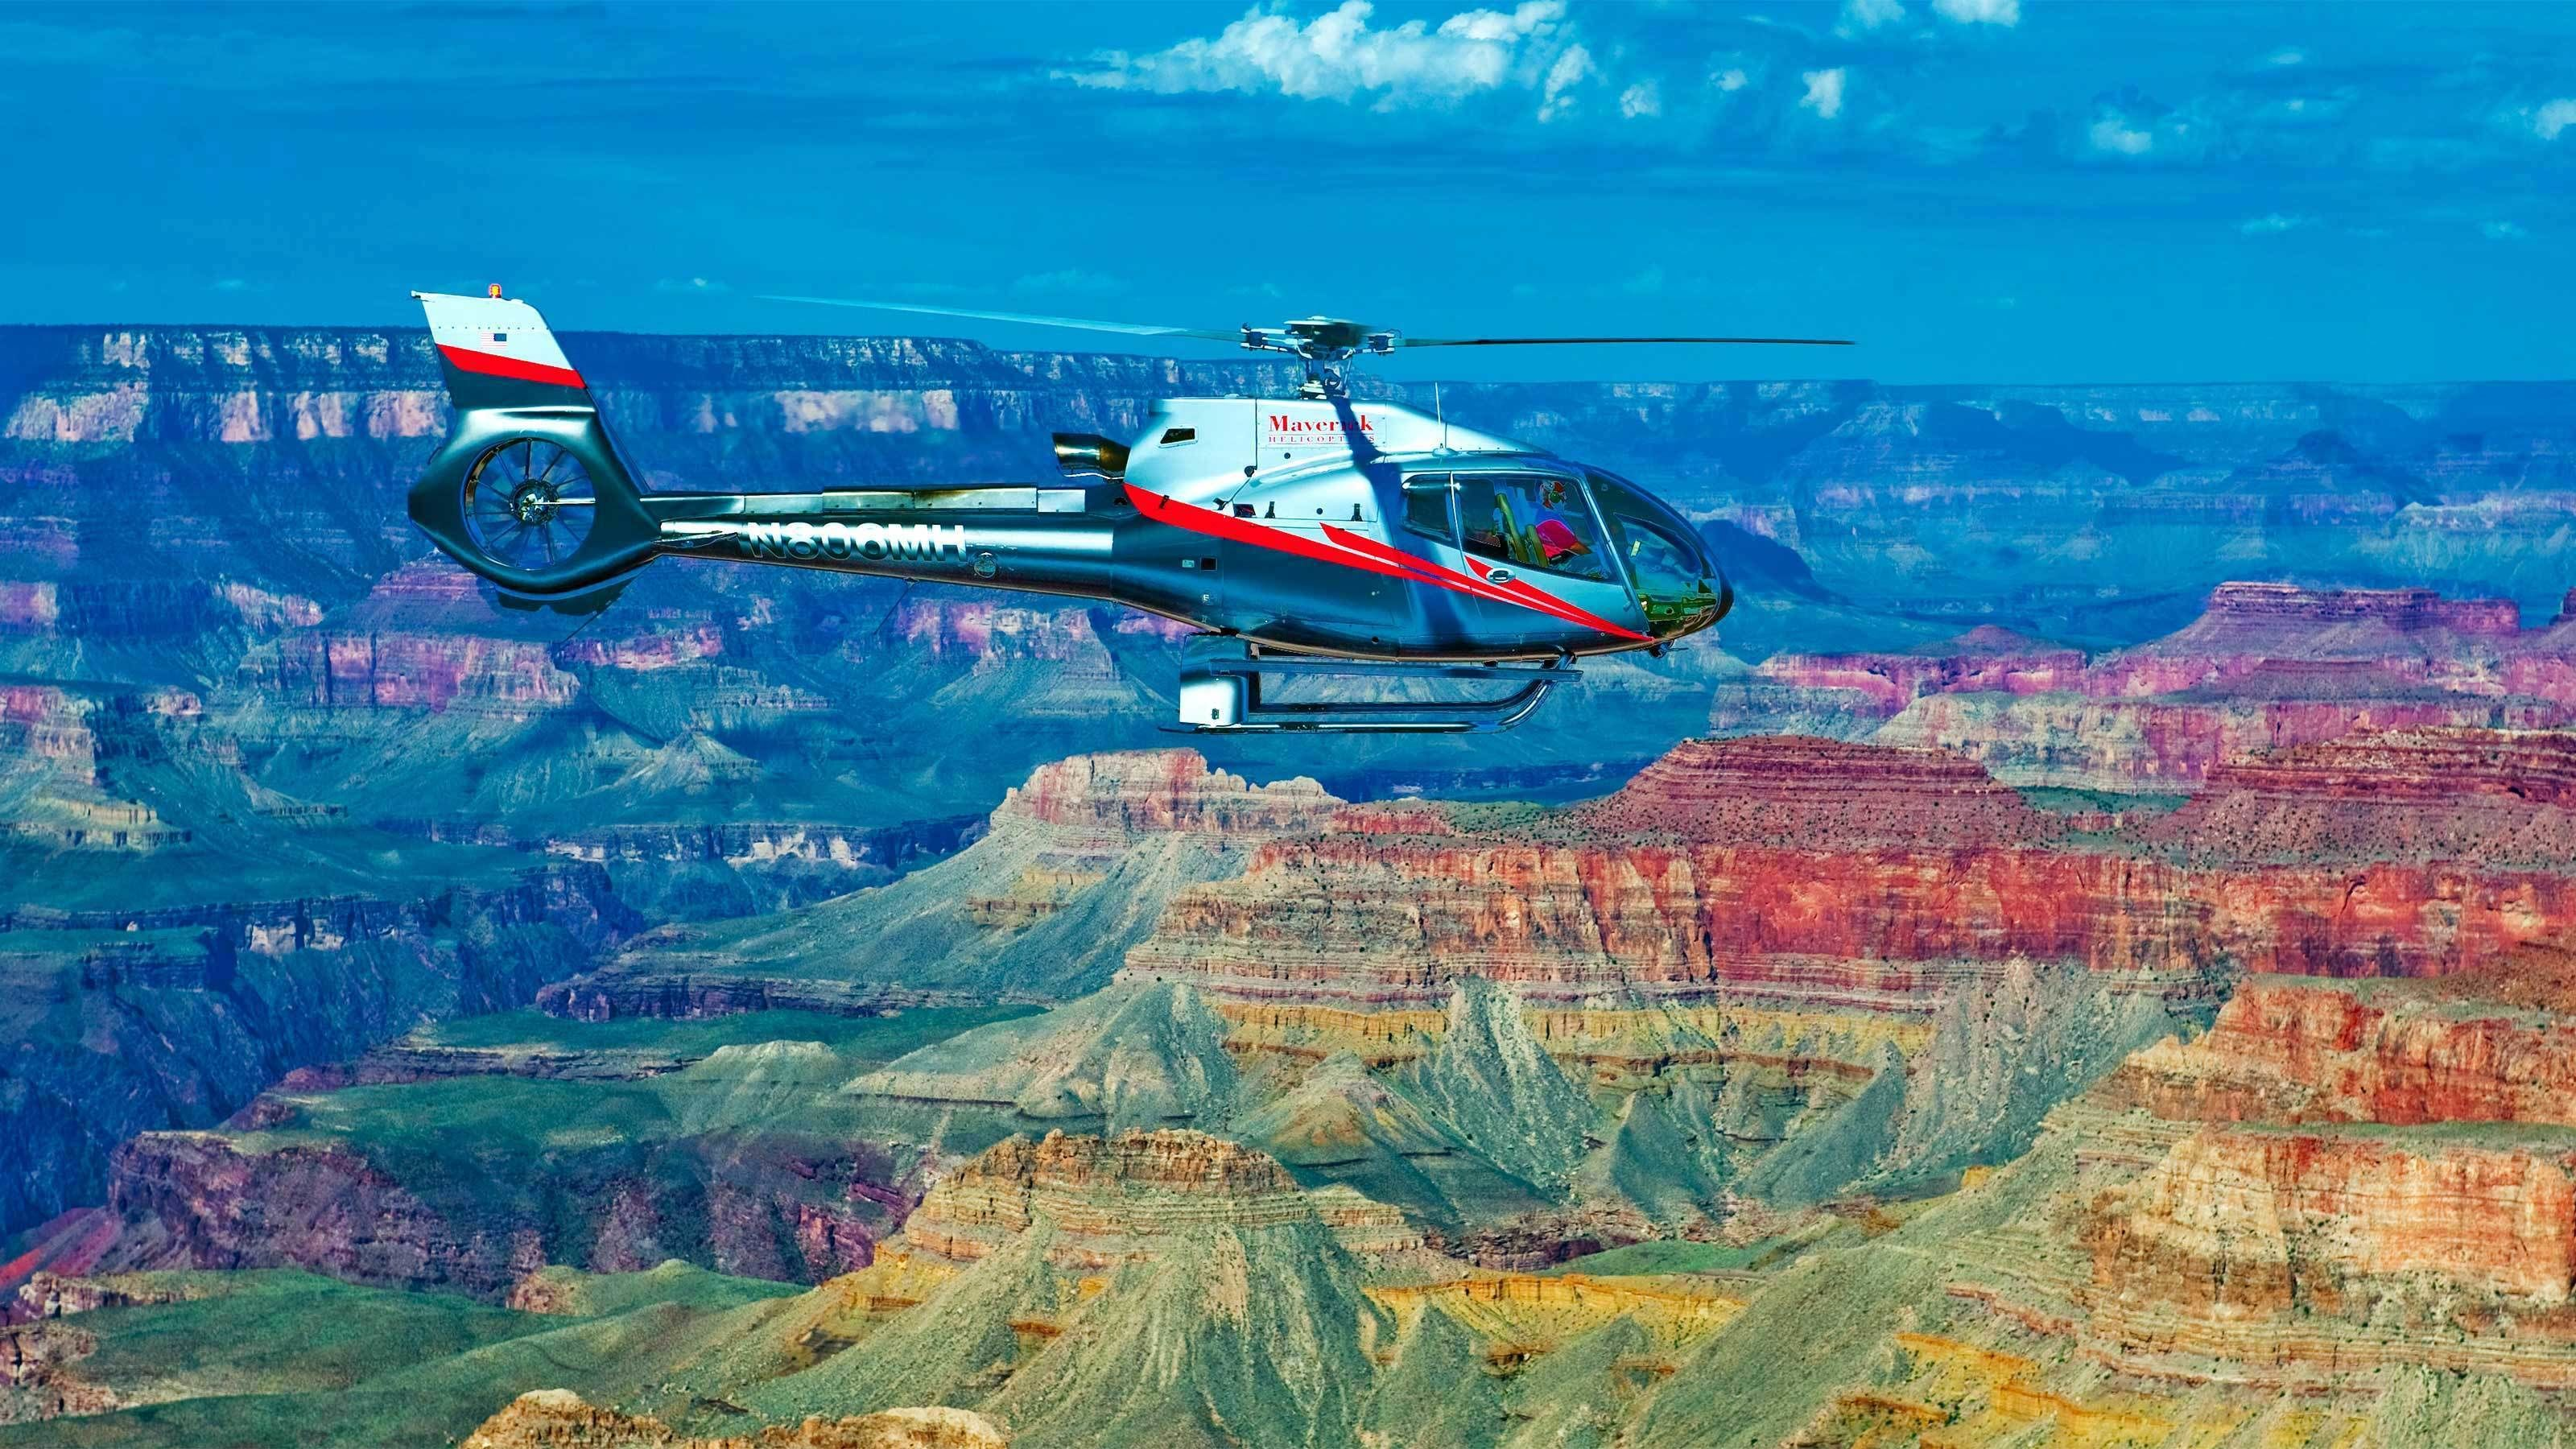 Fabulous view of the Grand Canyon as a helicopter flies by